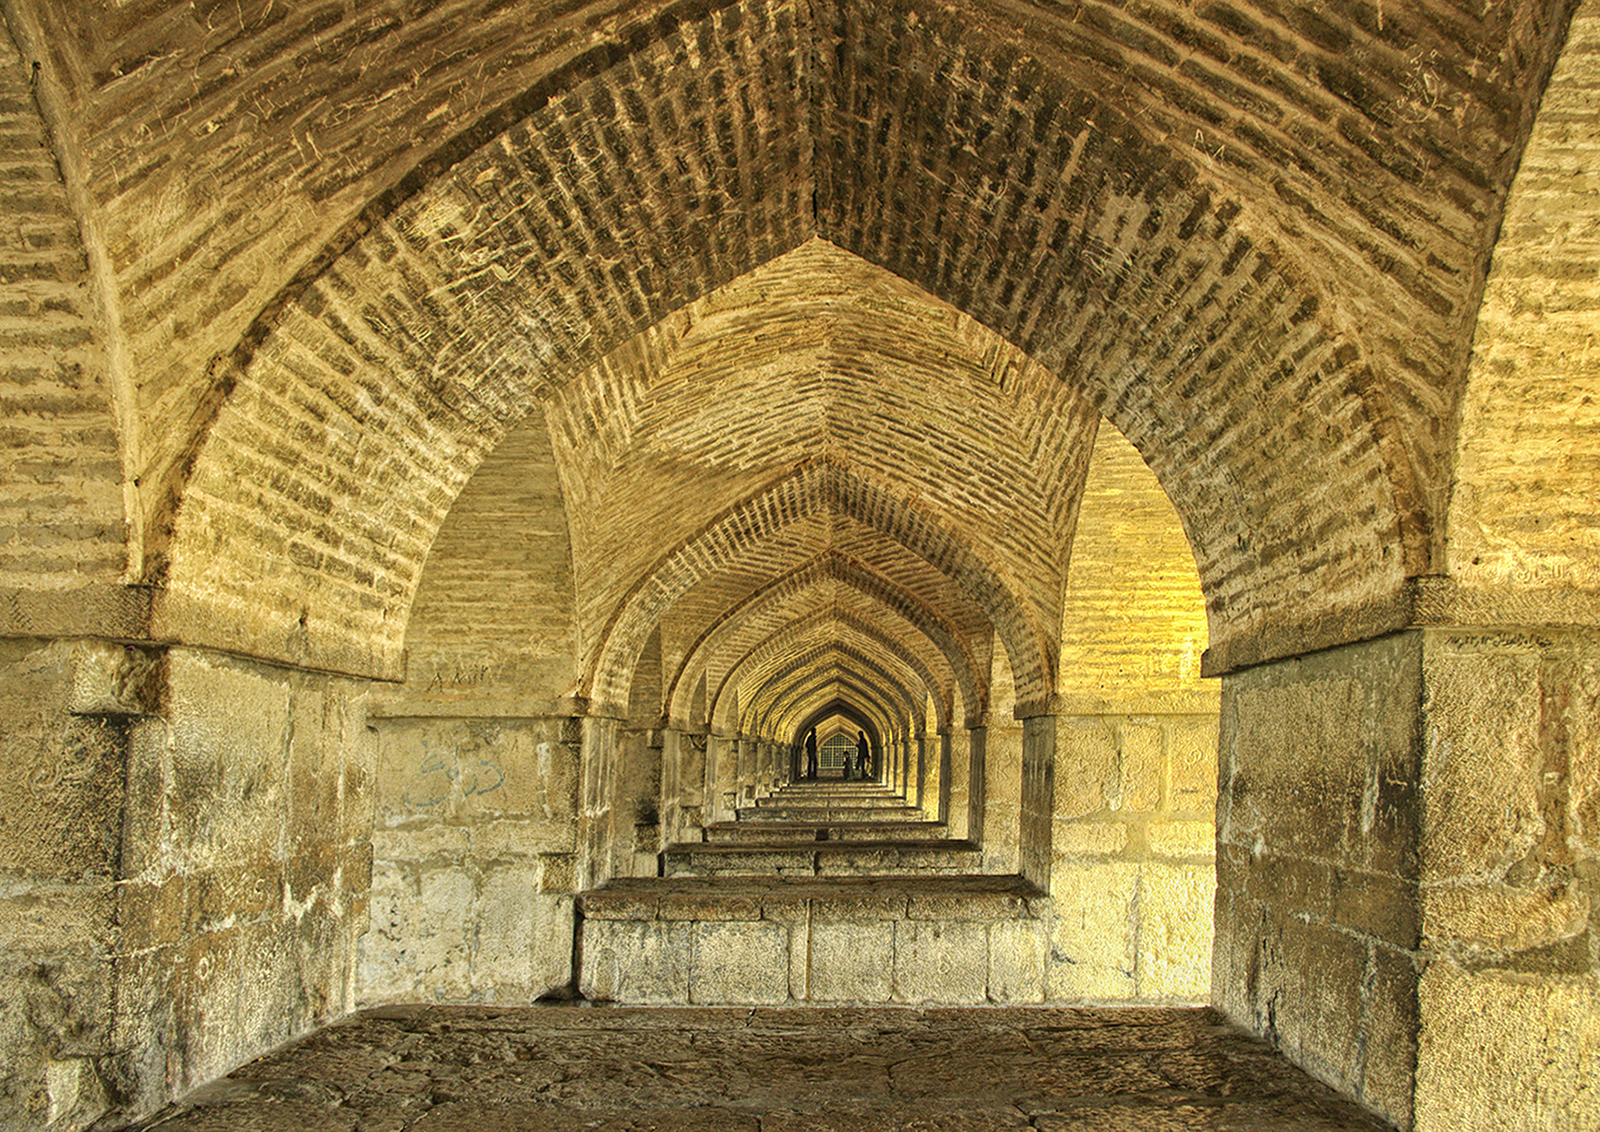 Under the Khaju Bridge, Esfehan